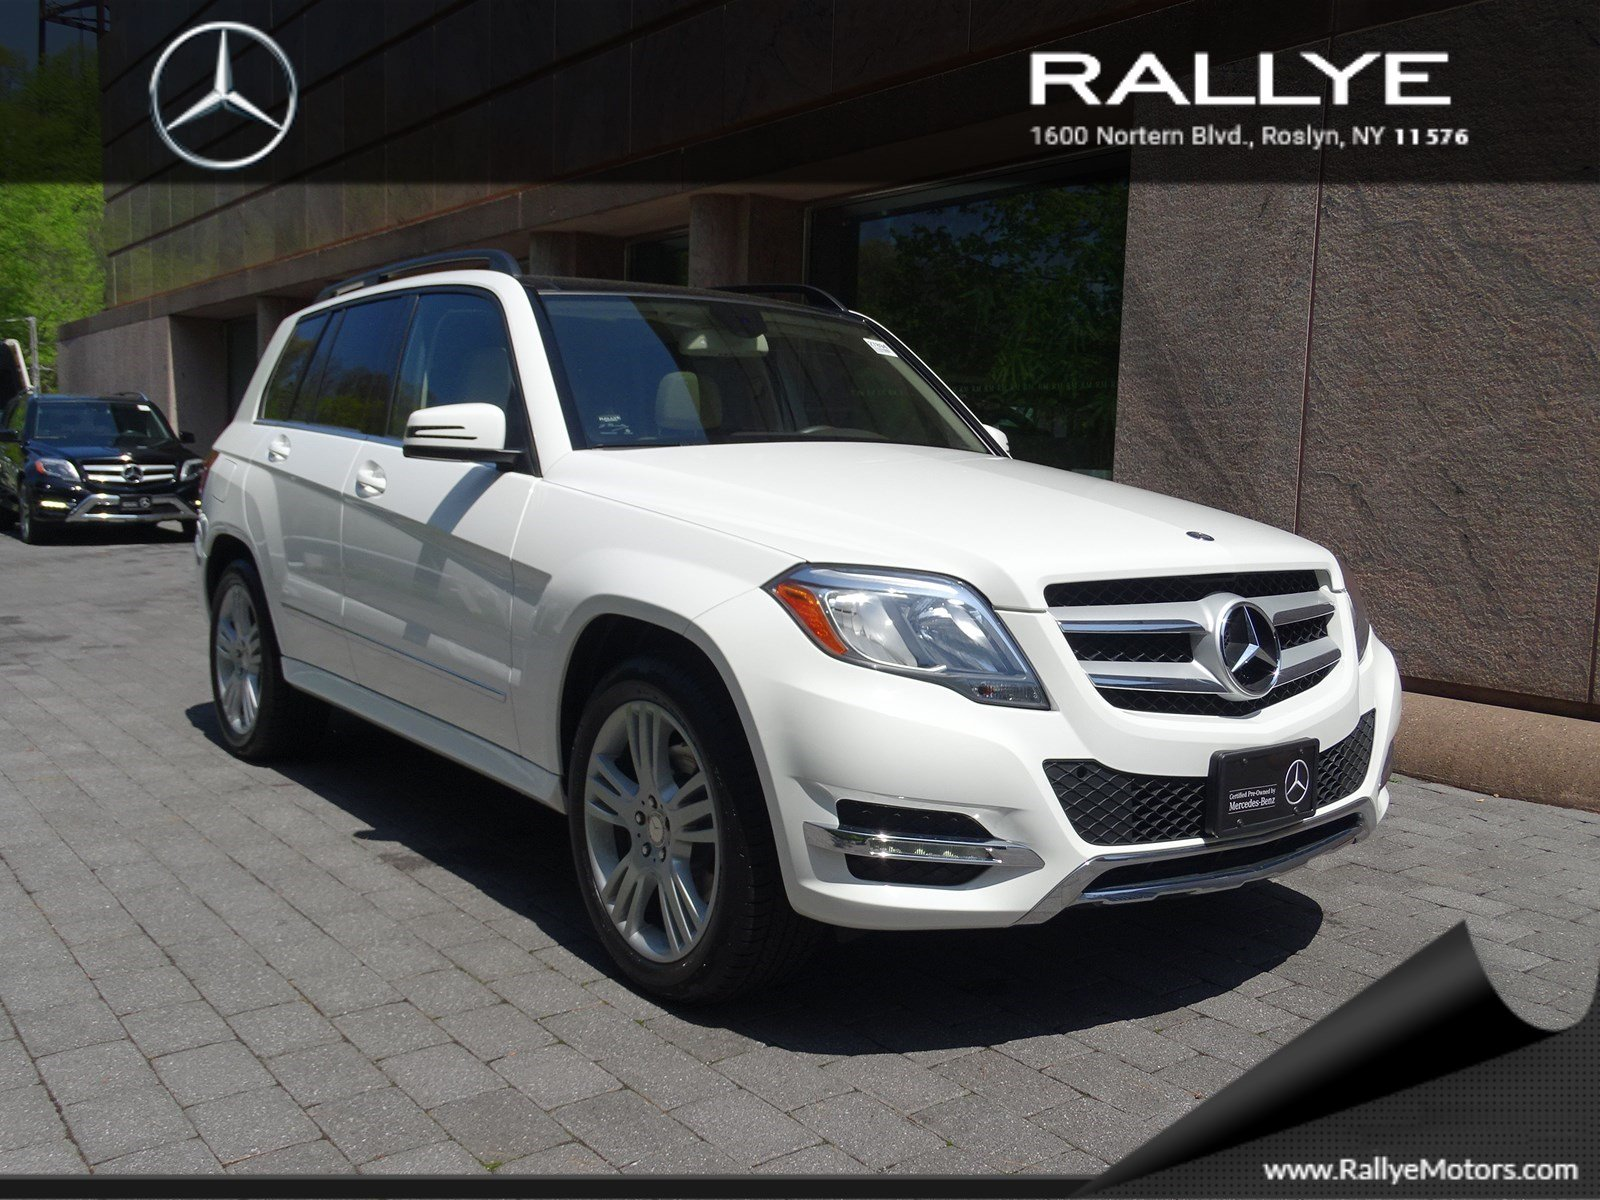 Certified pre owned 2014 mercedes benz glk glk 350 suv in for Rallye mercedes benz